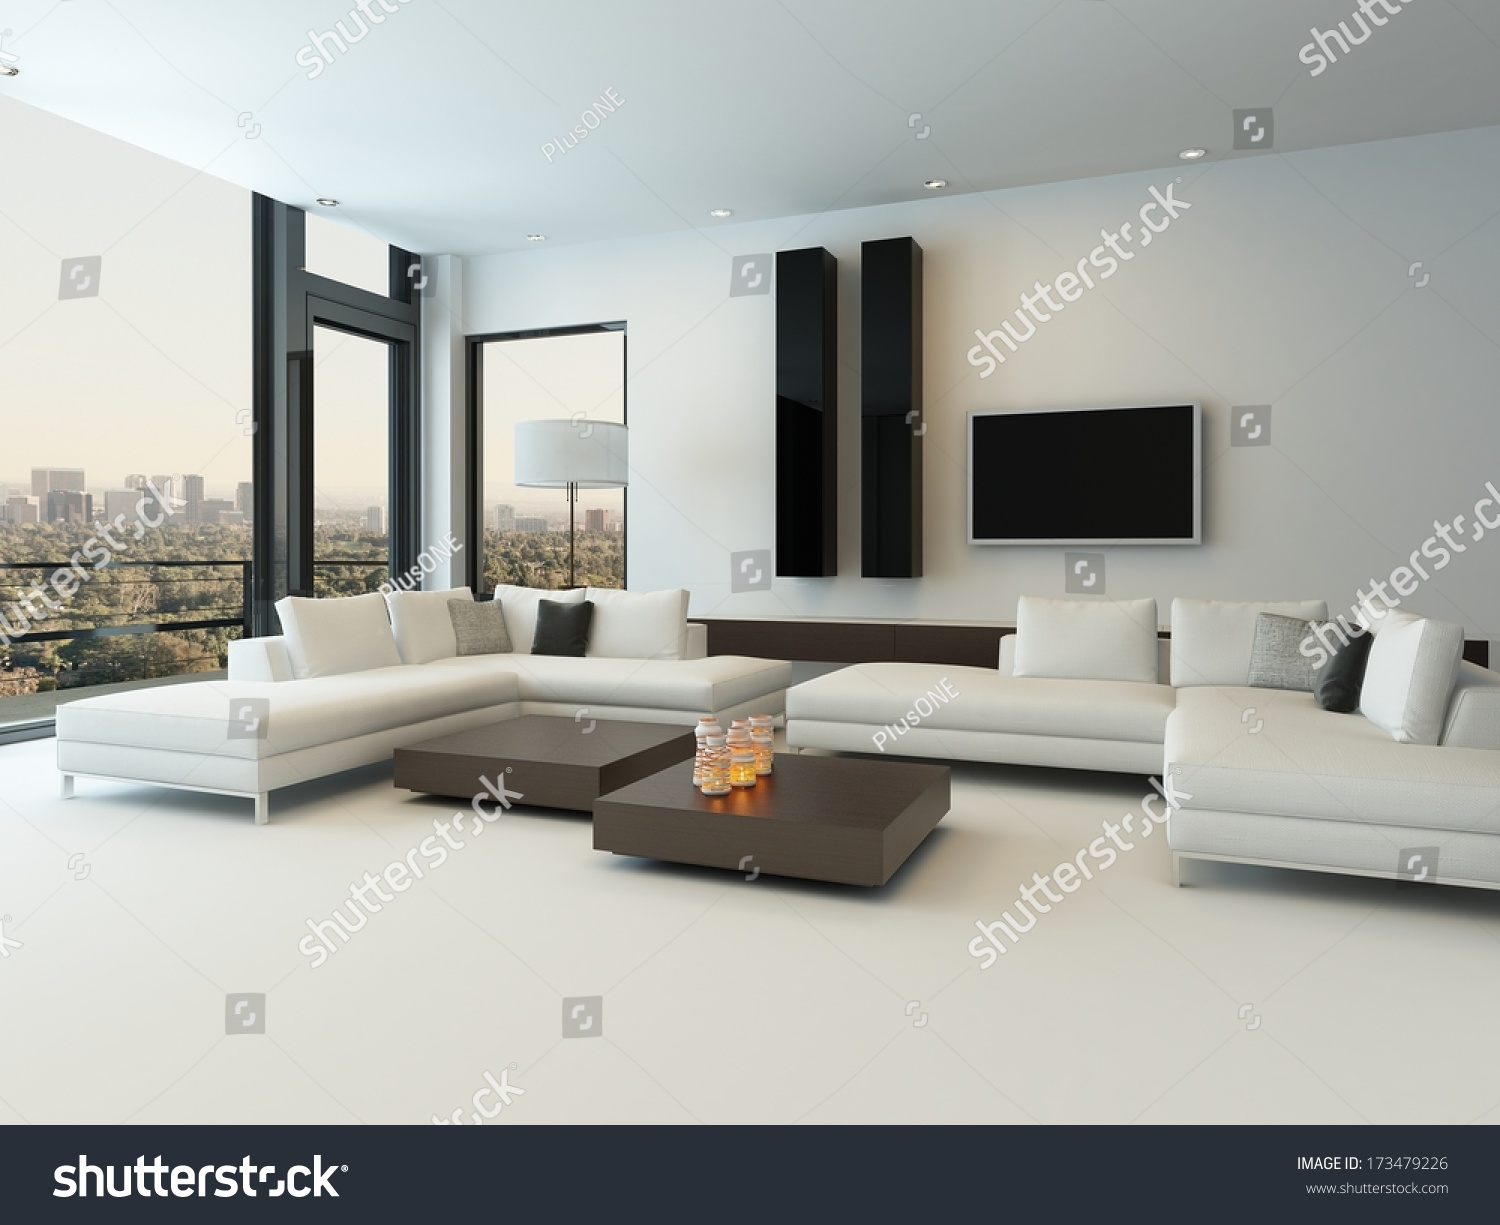 White Furniture For Living Room Modern White Living Room Wooden Furniture Stock Illustration